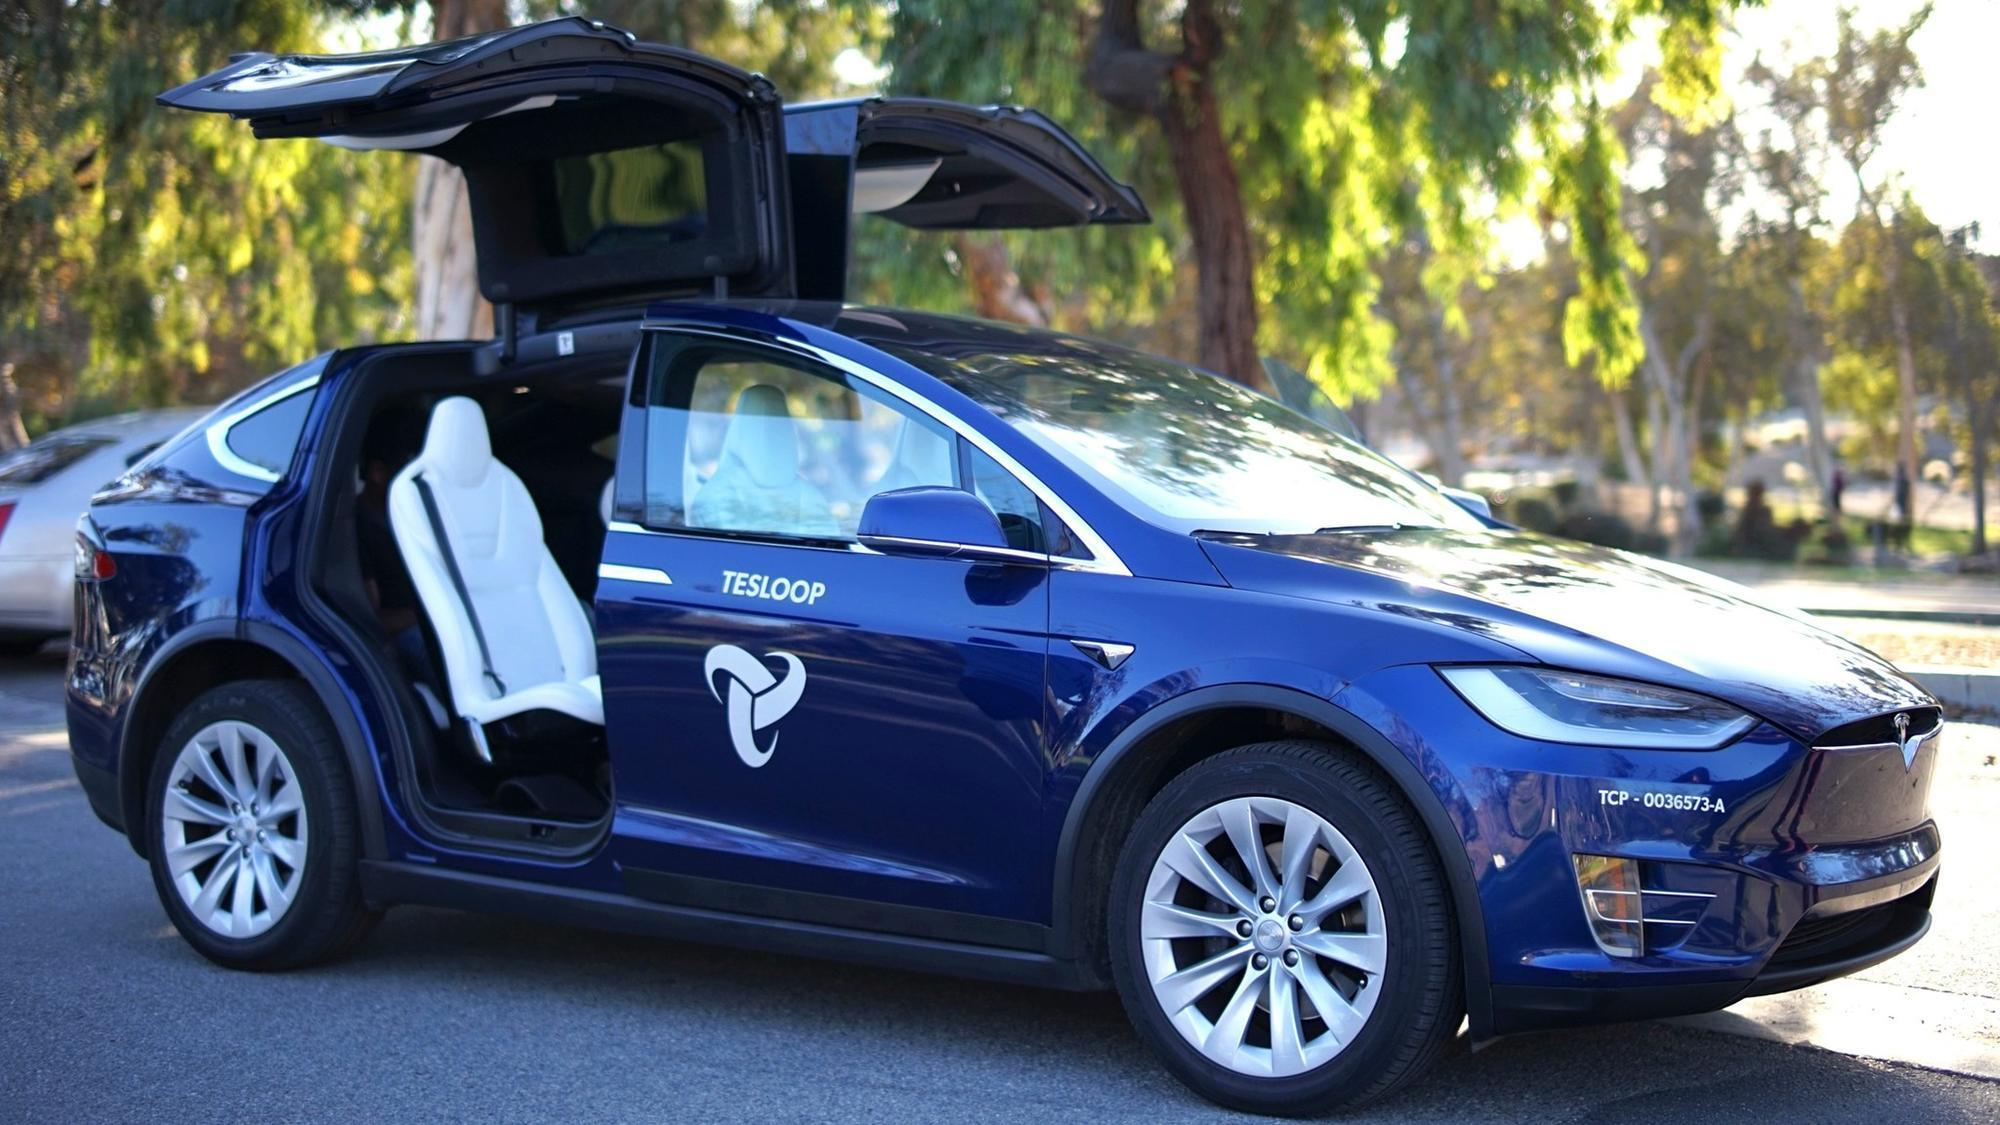 Discount Offered Travelers In Luxury Tesla Commute The